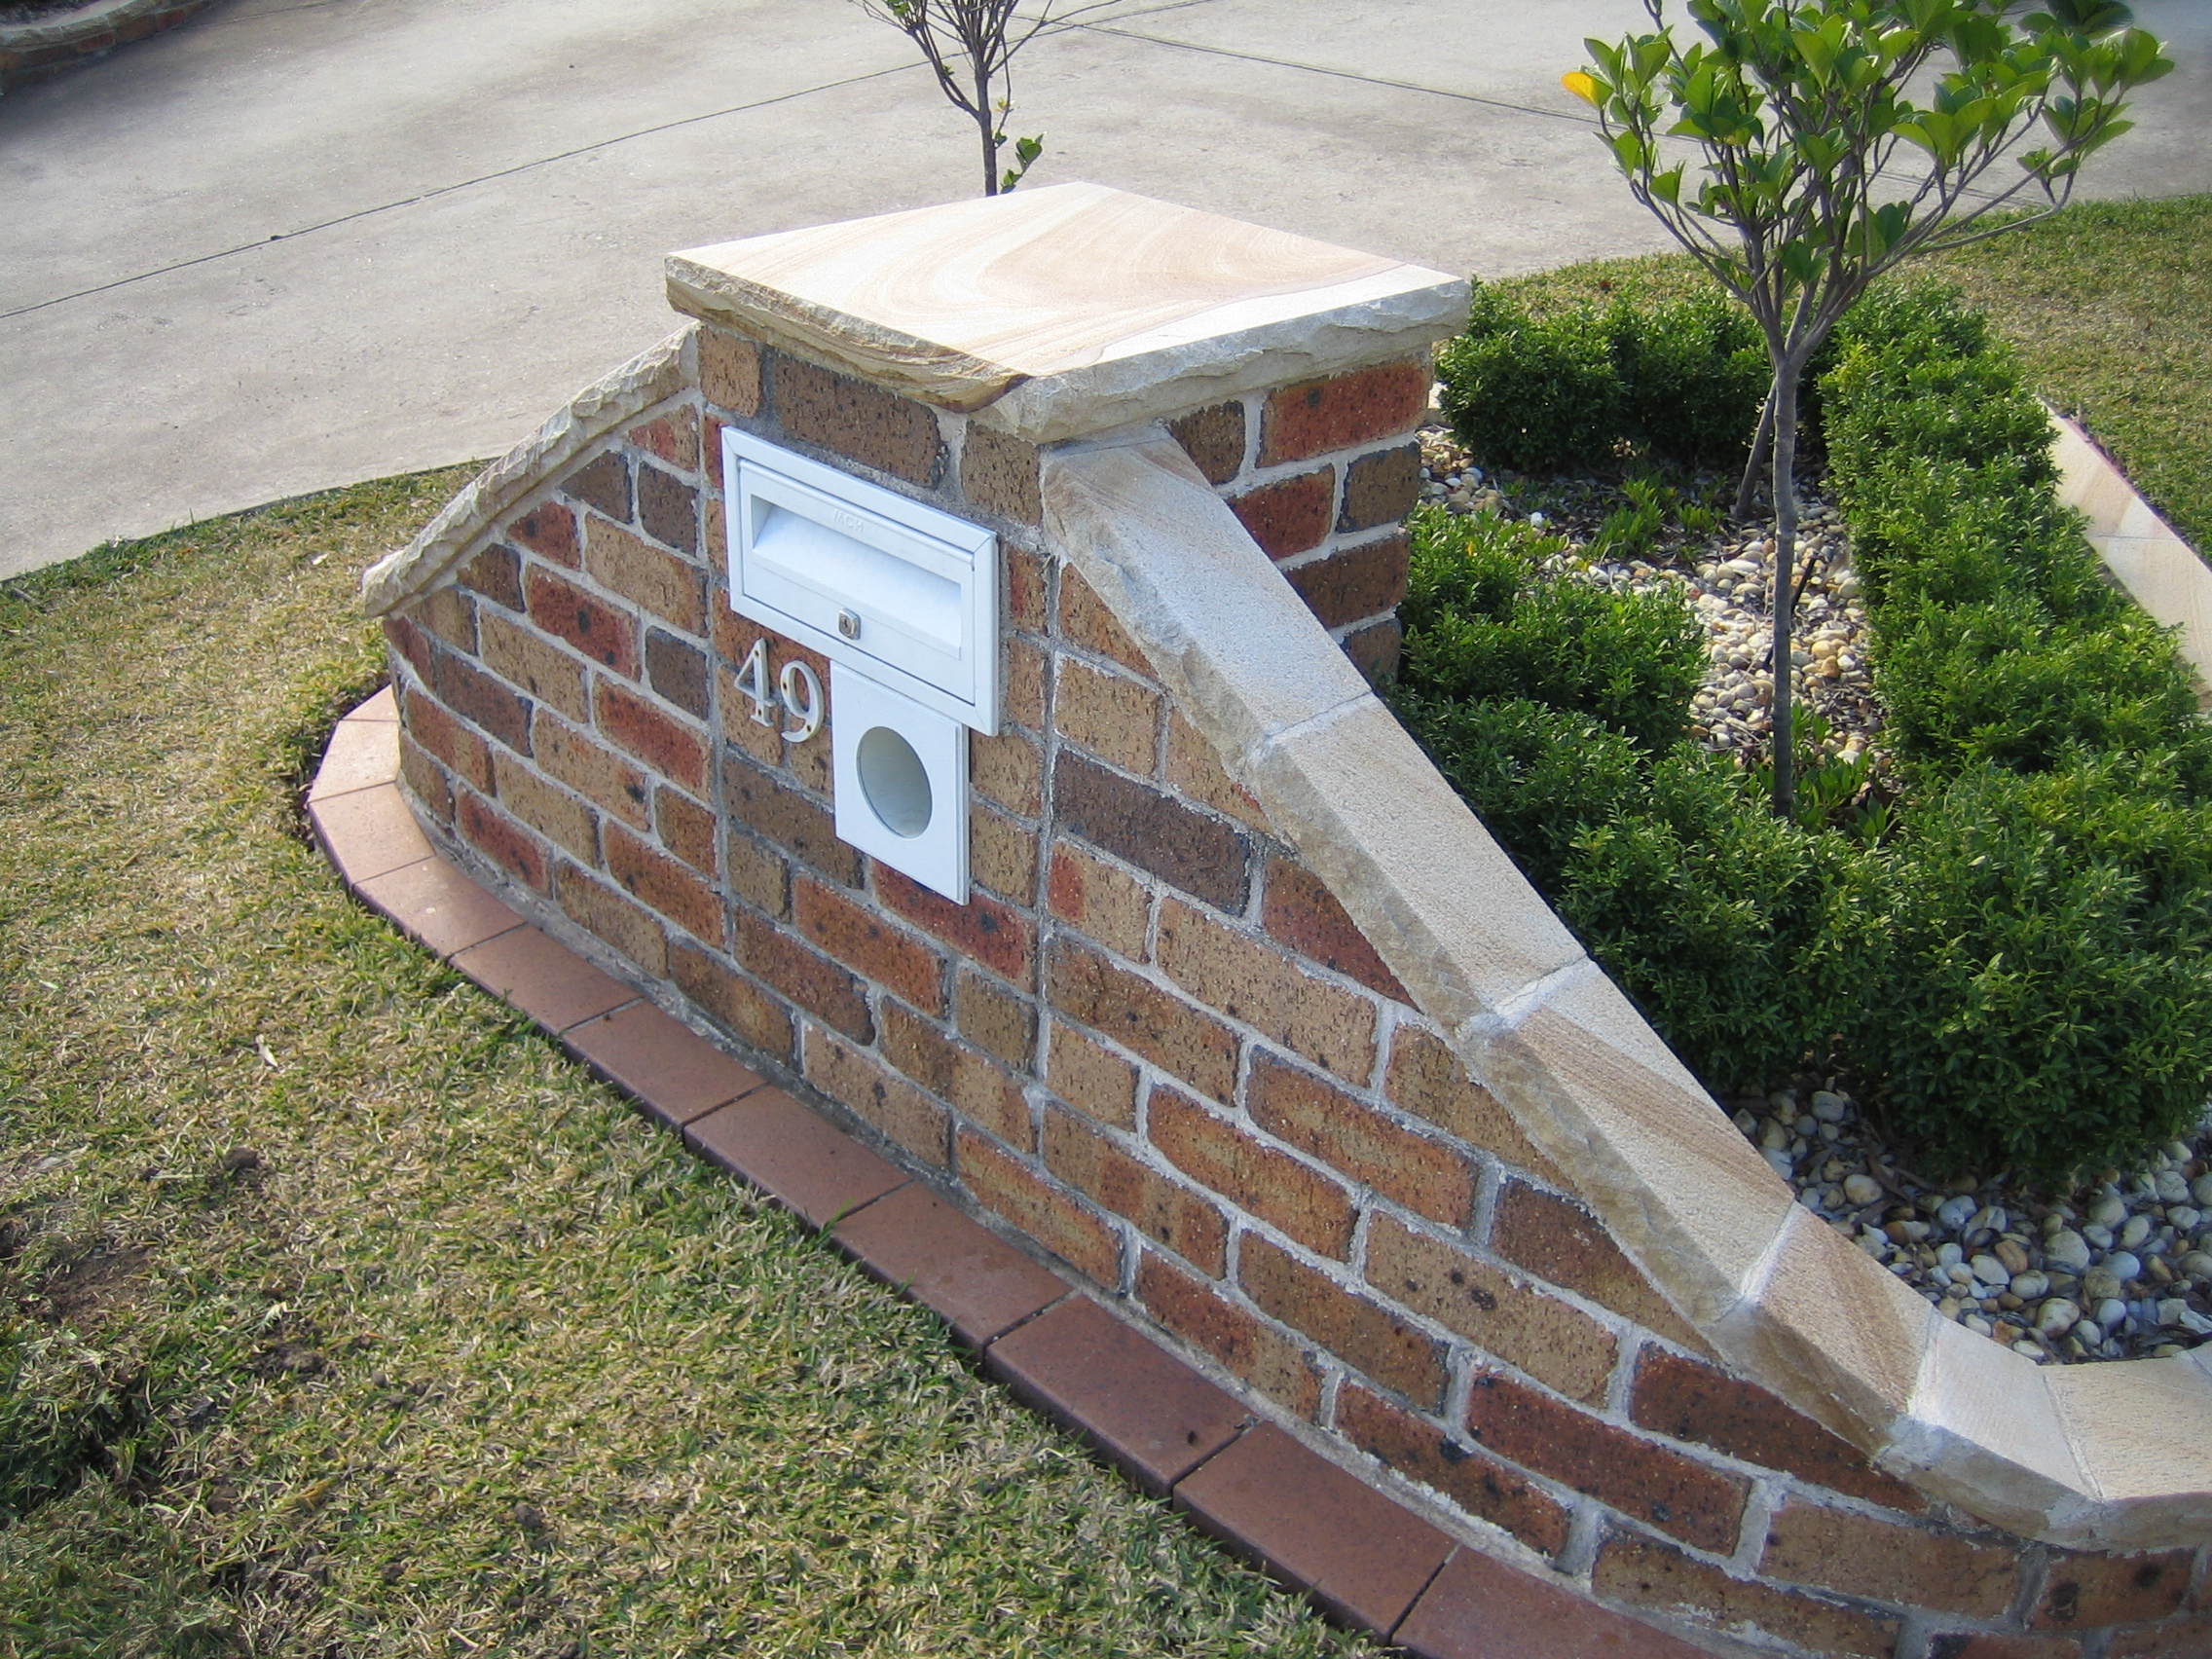 062 sandstone cupping on top of the letterbox and brick wall.jpg